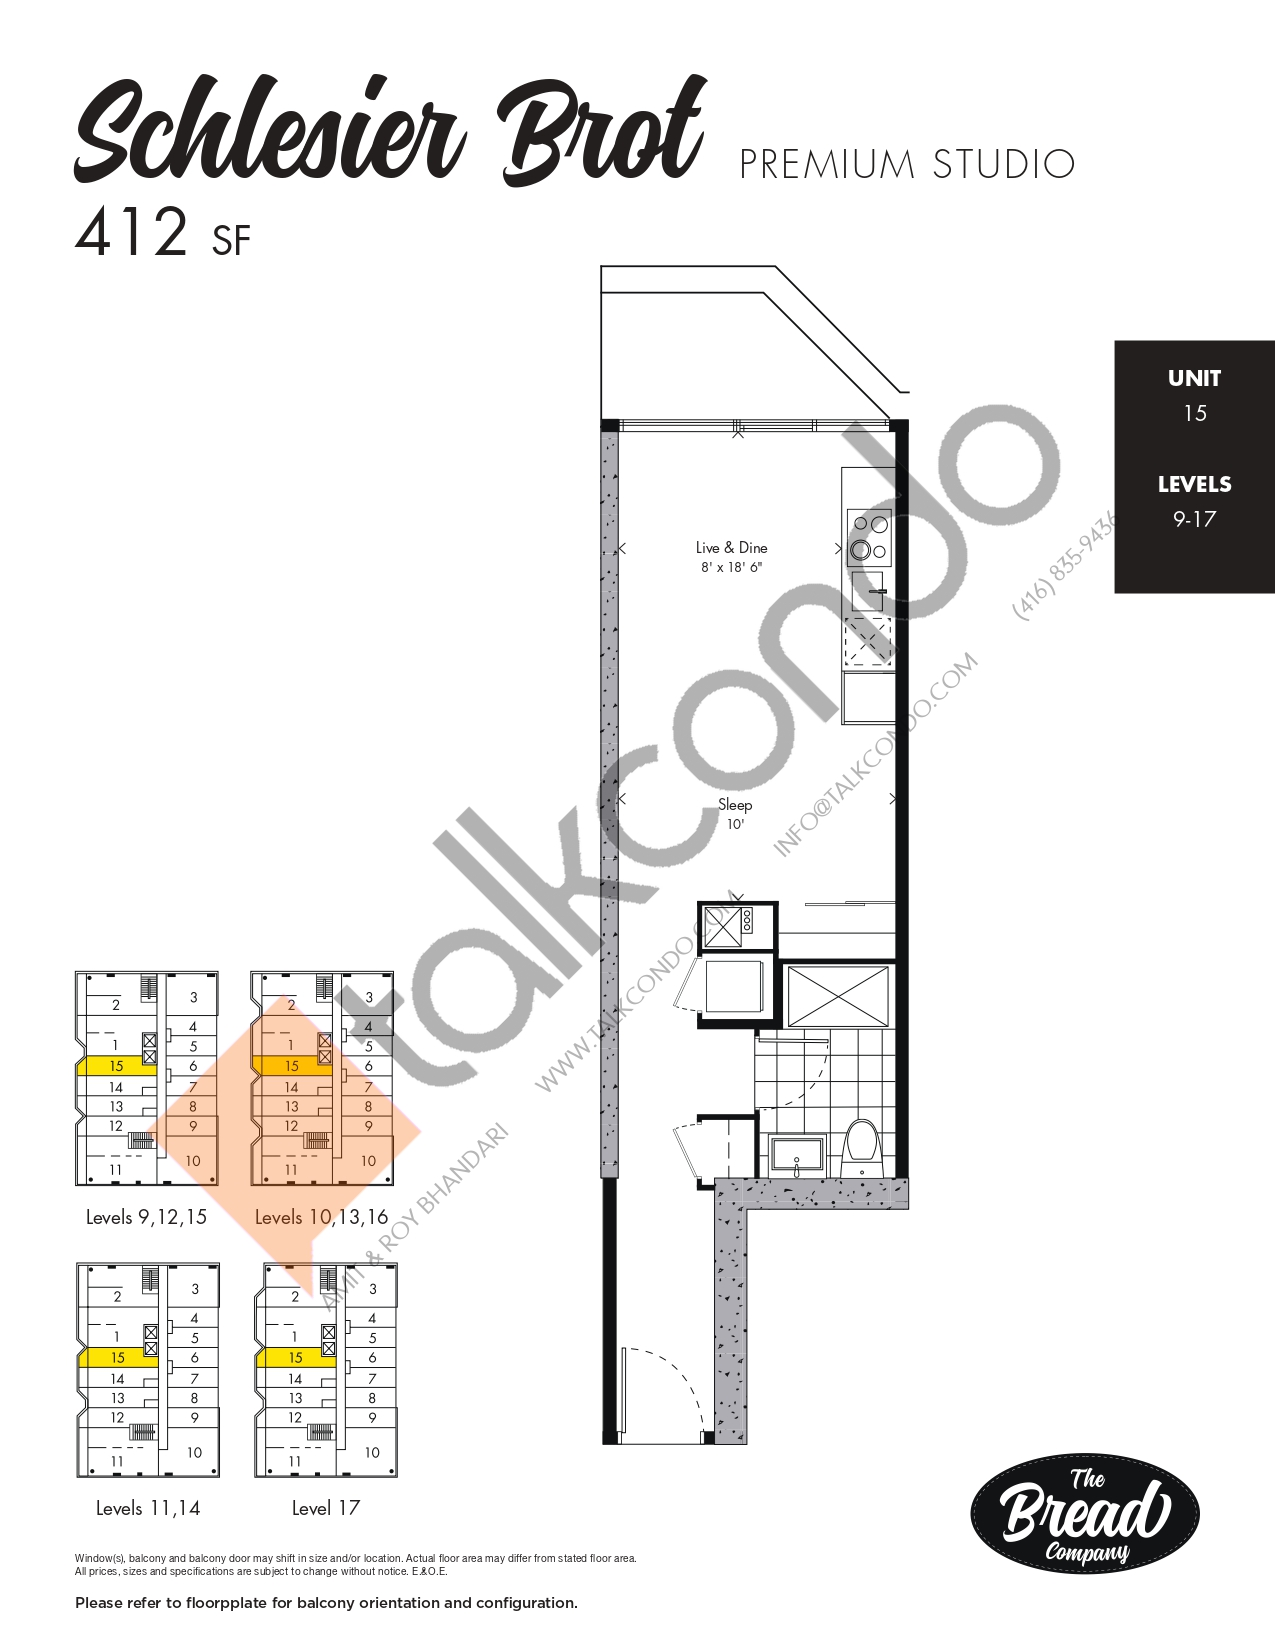 Schlesier Brot Floor Plan at The Bread Company Condos - 412 sq.ft